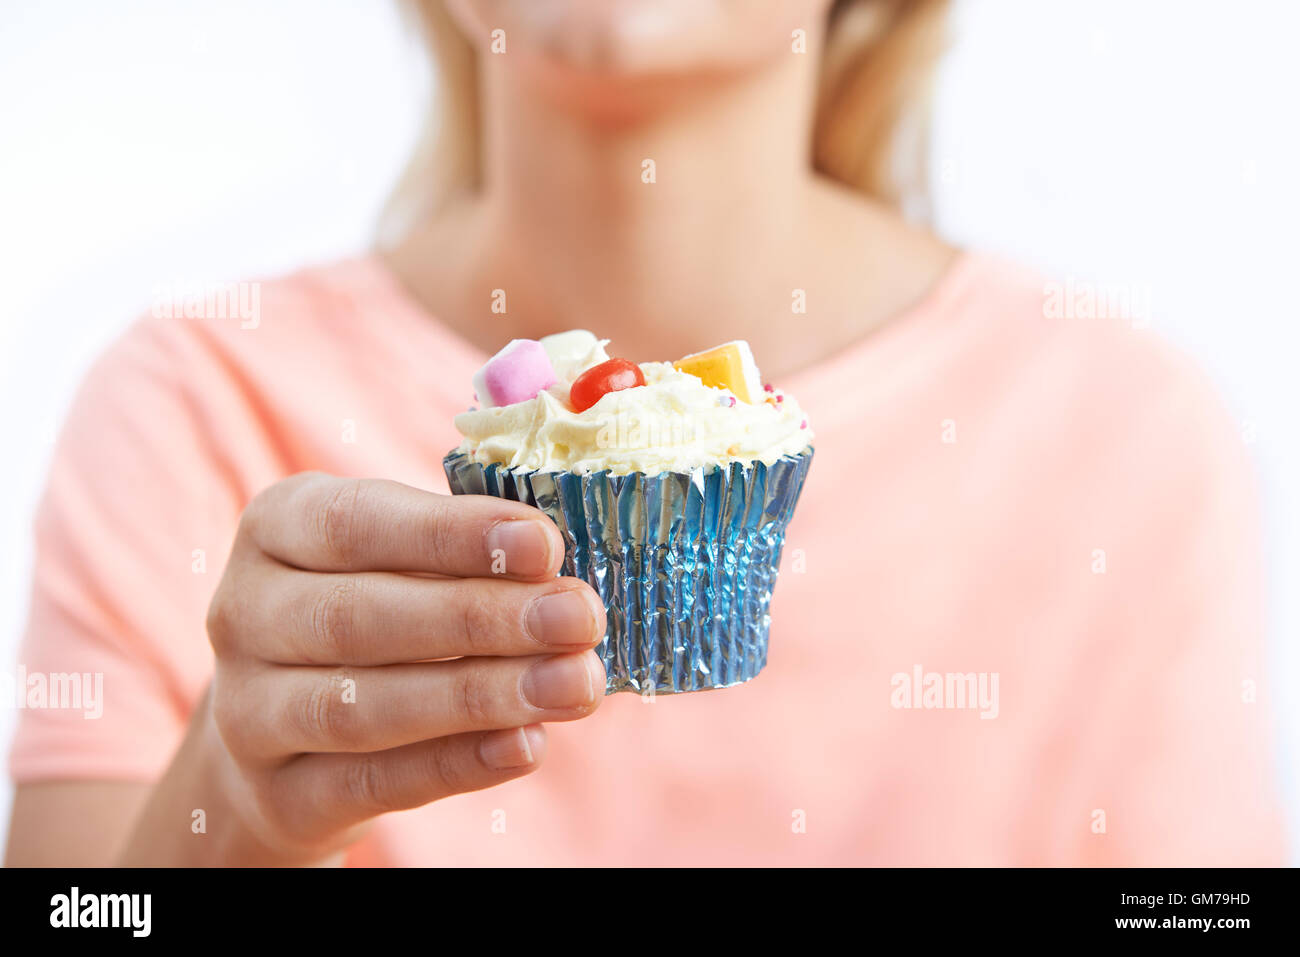 Close Up Of Woman Holding Unhealthy Cupcake - Stock Image